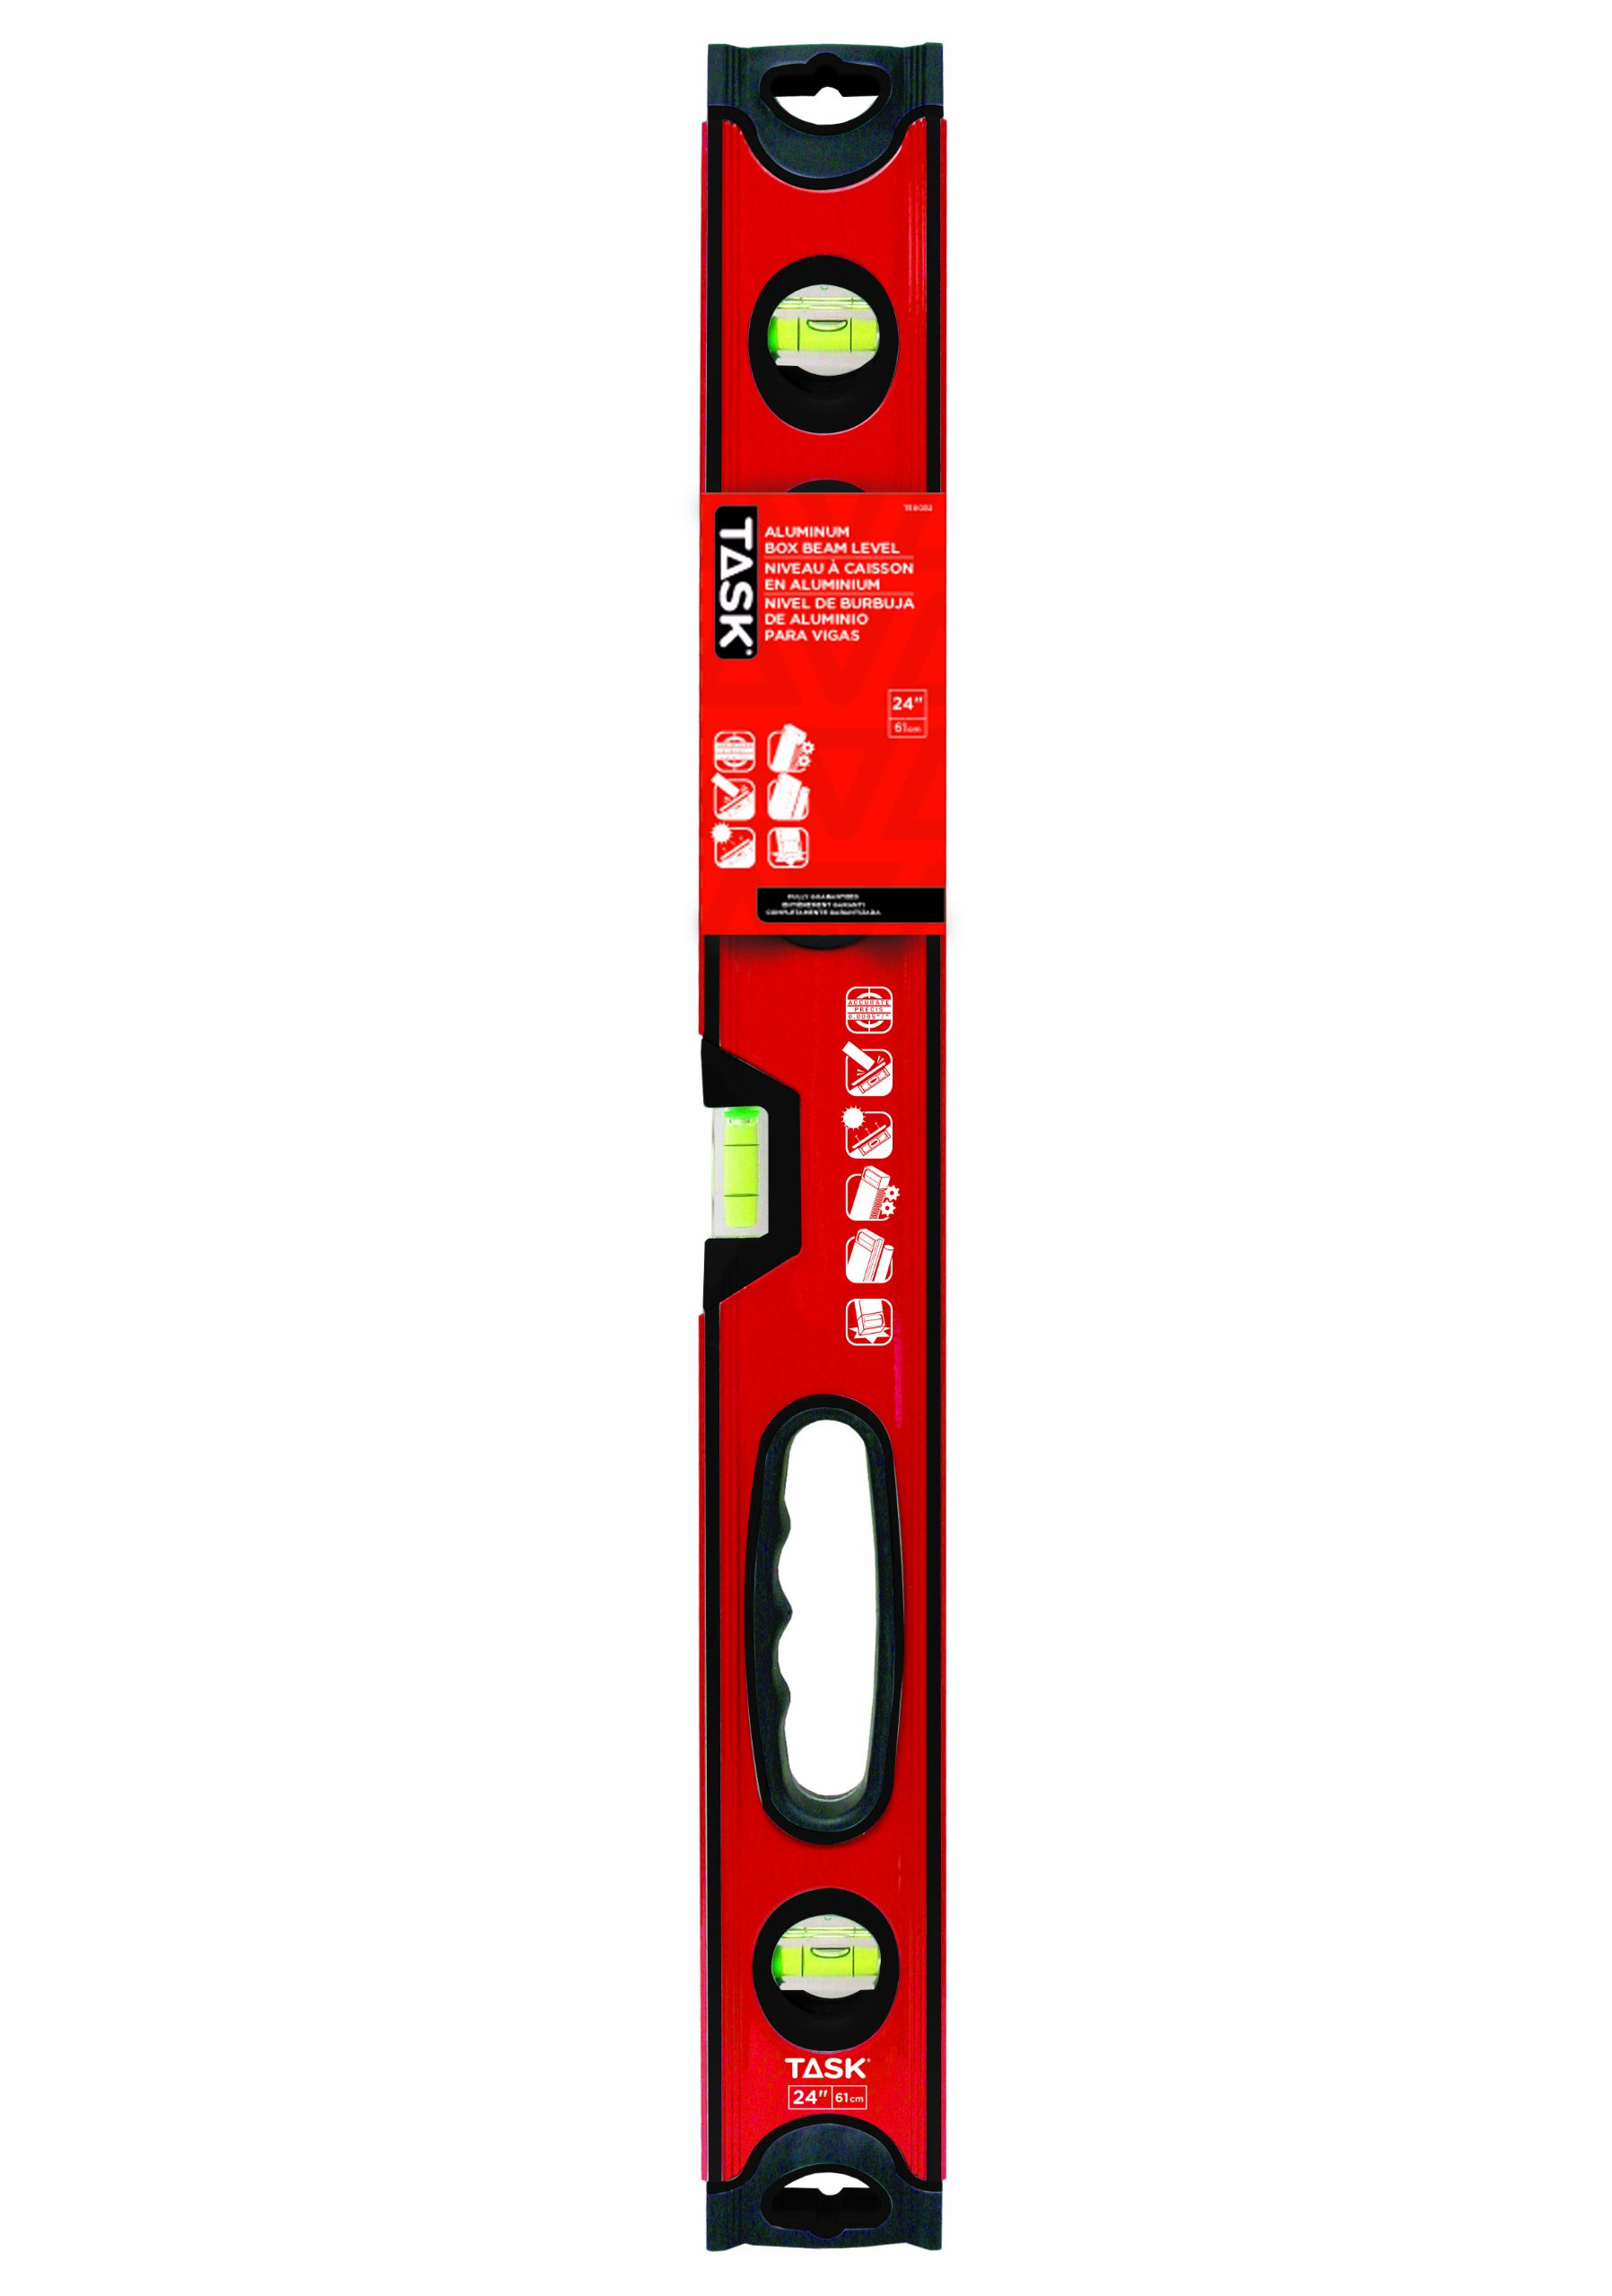 Task Tools T58032 24-Inch Box Beam Level by Task Tools (Image #1)